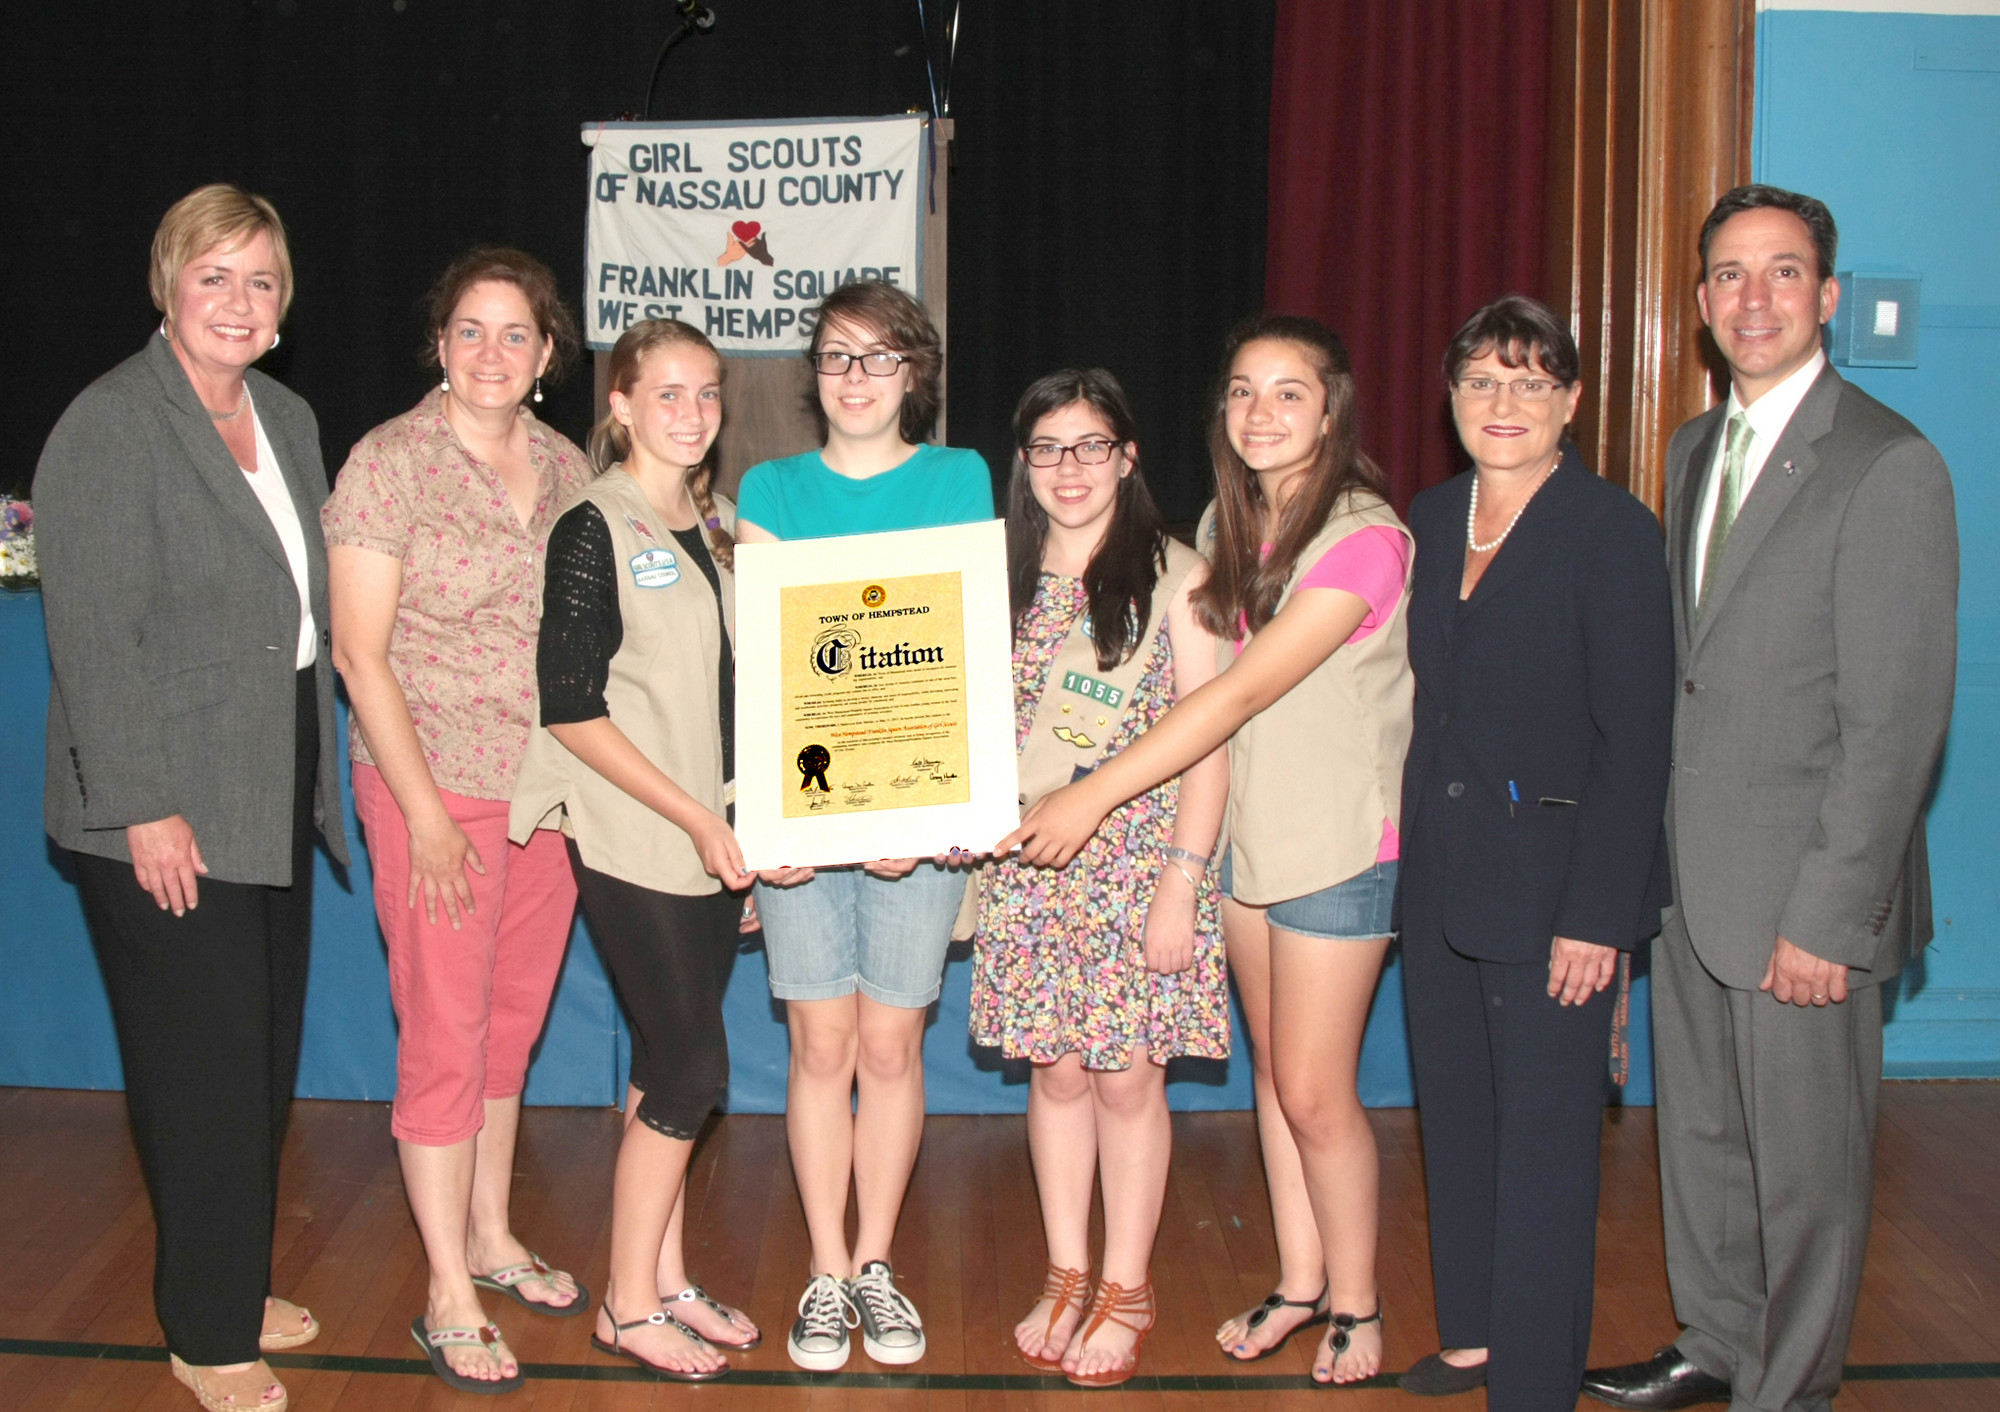 New York State Senator Jack Martins, Nassau County Clerk Maureen O'Connell, Town of Hempstead Supervisor Kate Murray congratulate Troop 1843 with the Silver Award alongside Leader Debbie DePalmo.